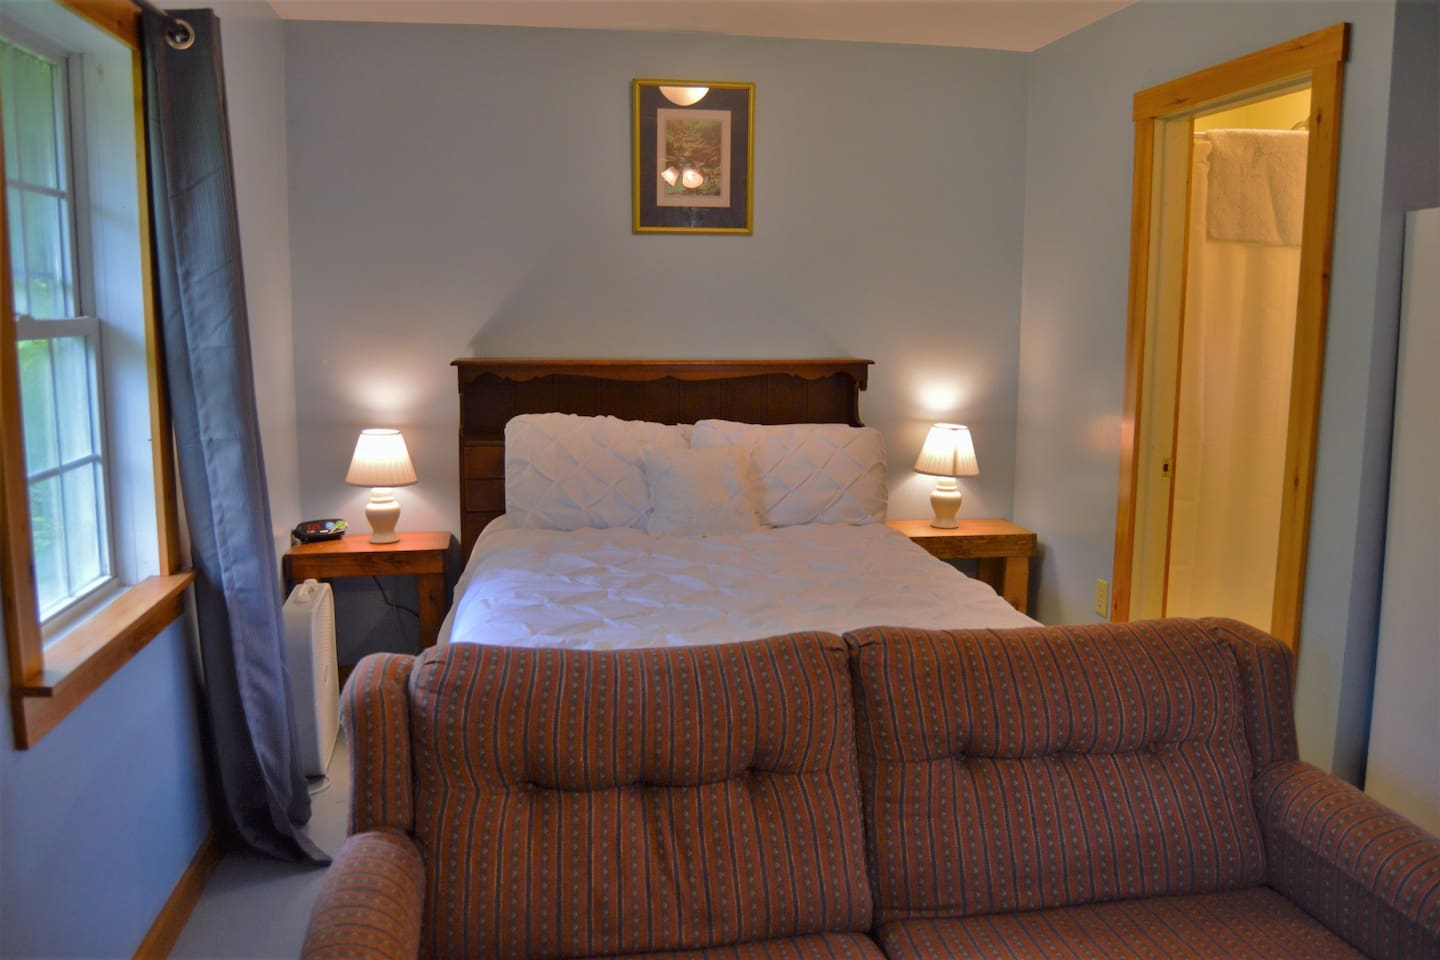 Our guest house is a studio apartment with a double bed, as well as a pull out sofa bed. Linens are provided for both beds